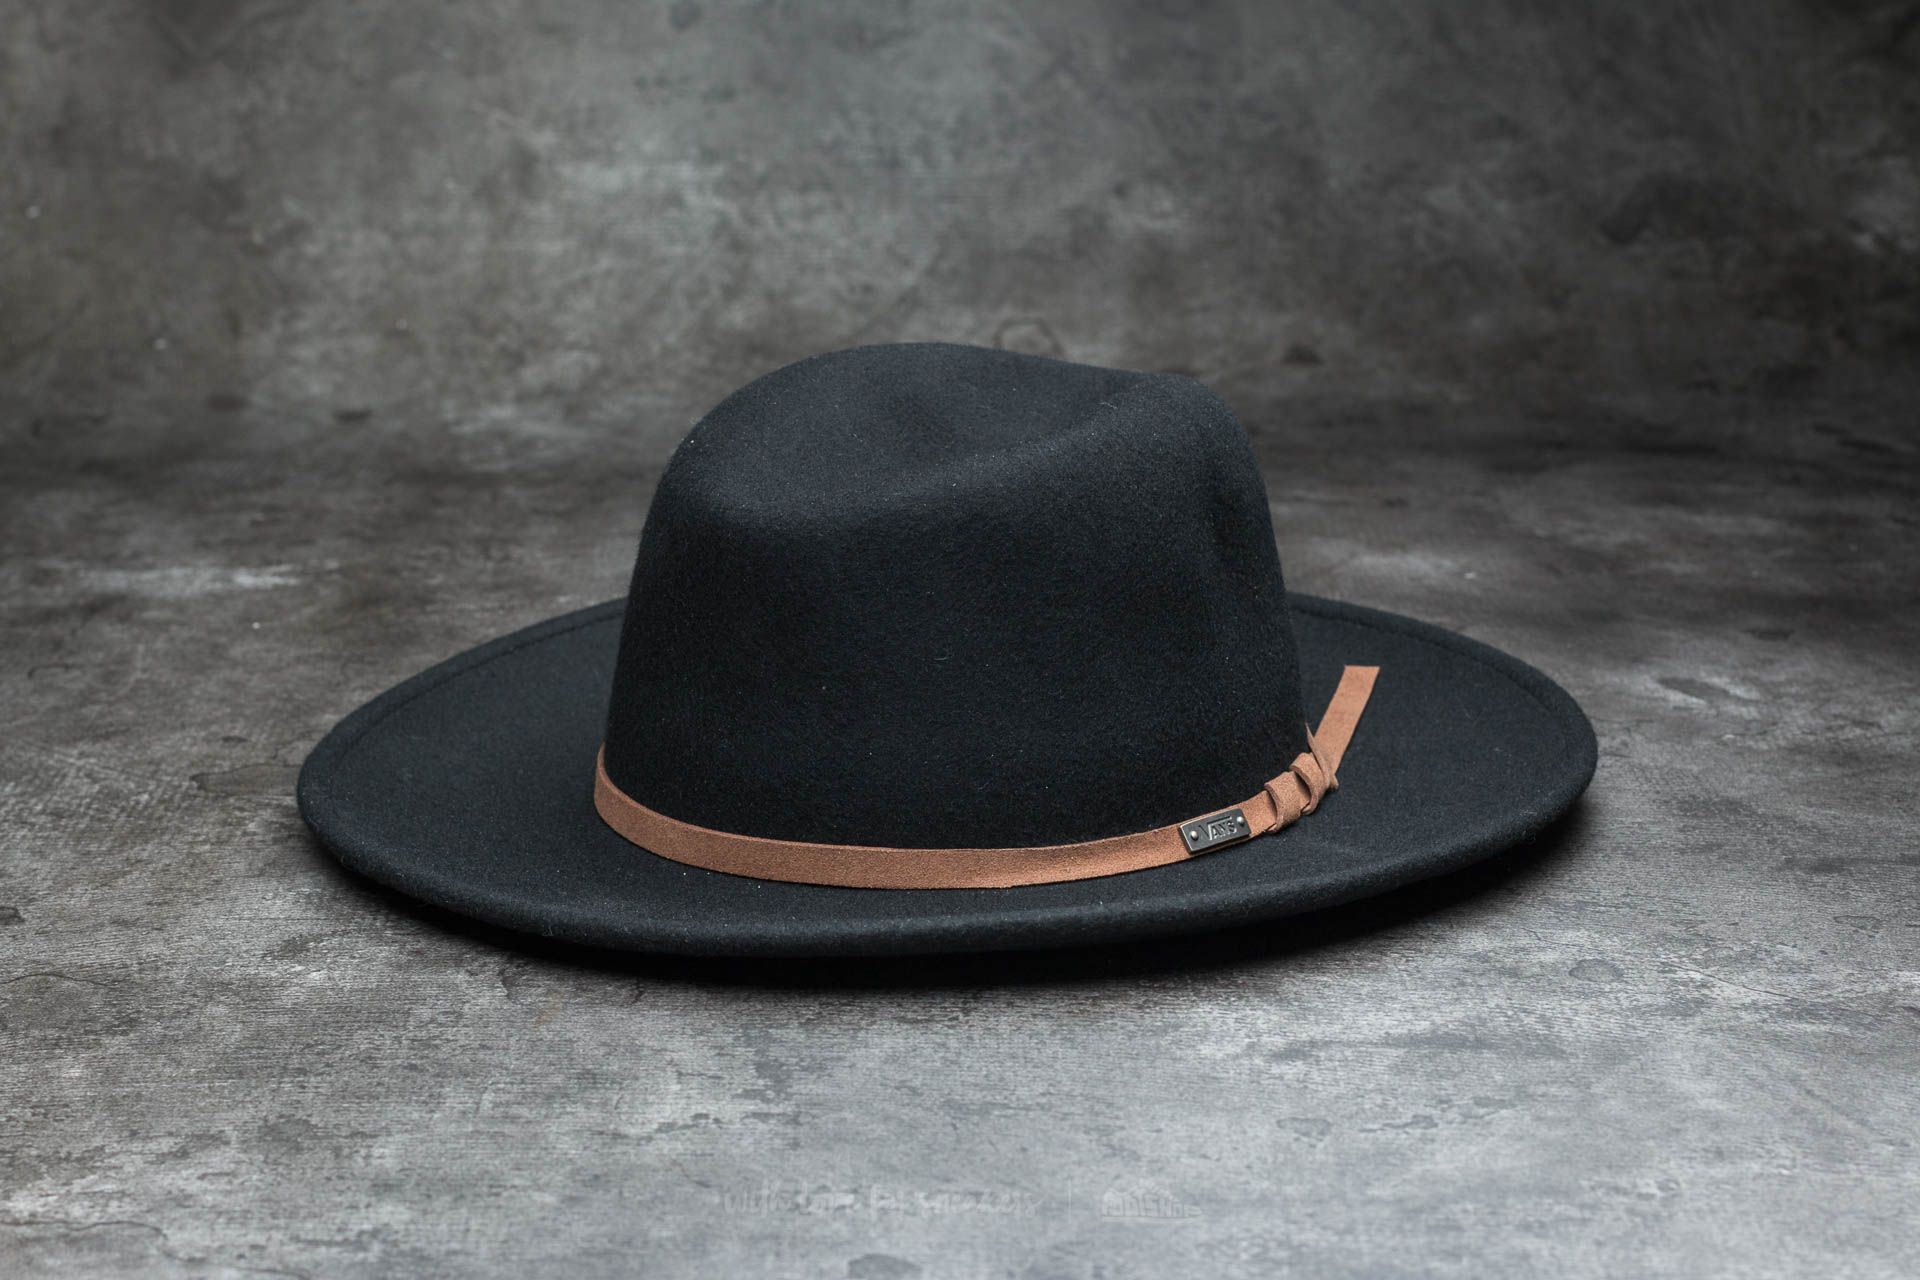 Vans Tell Me Wide Brim Hat Black - 14306